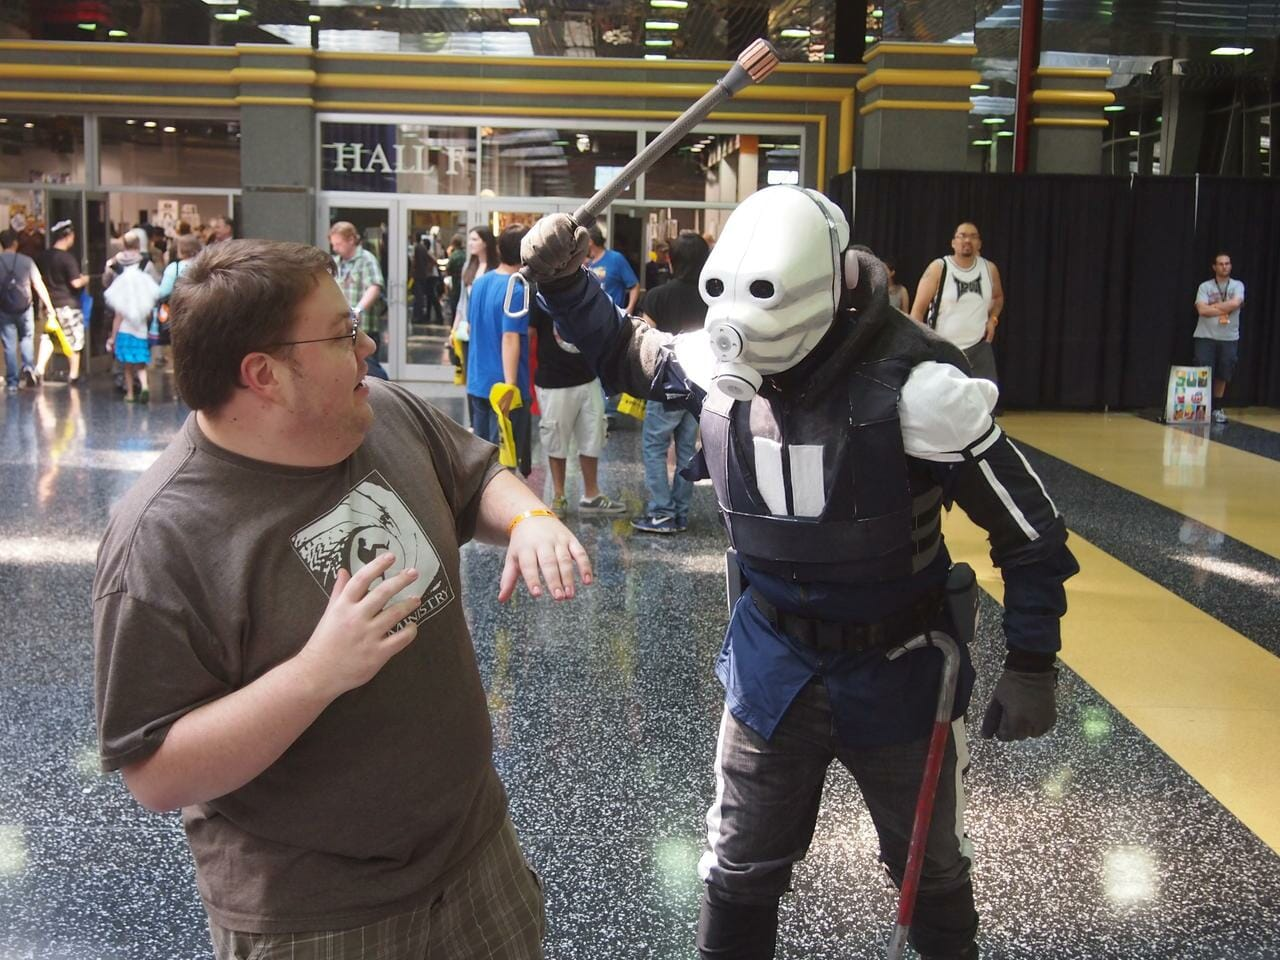 Civil Protection @ Wizard World by Kay Kove